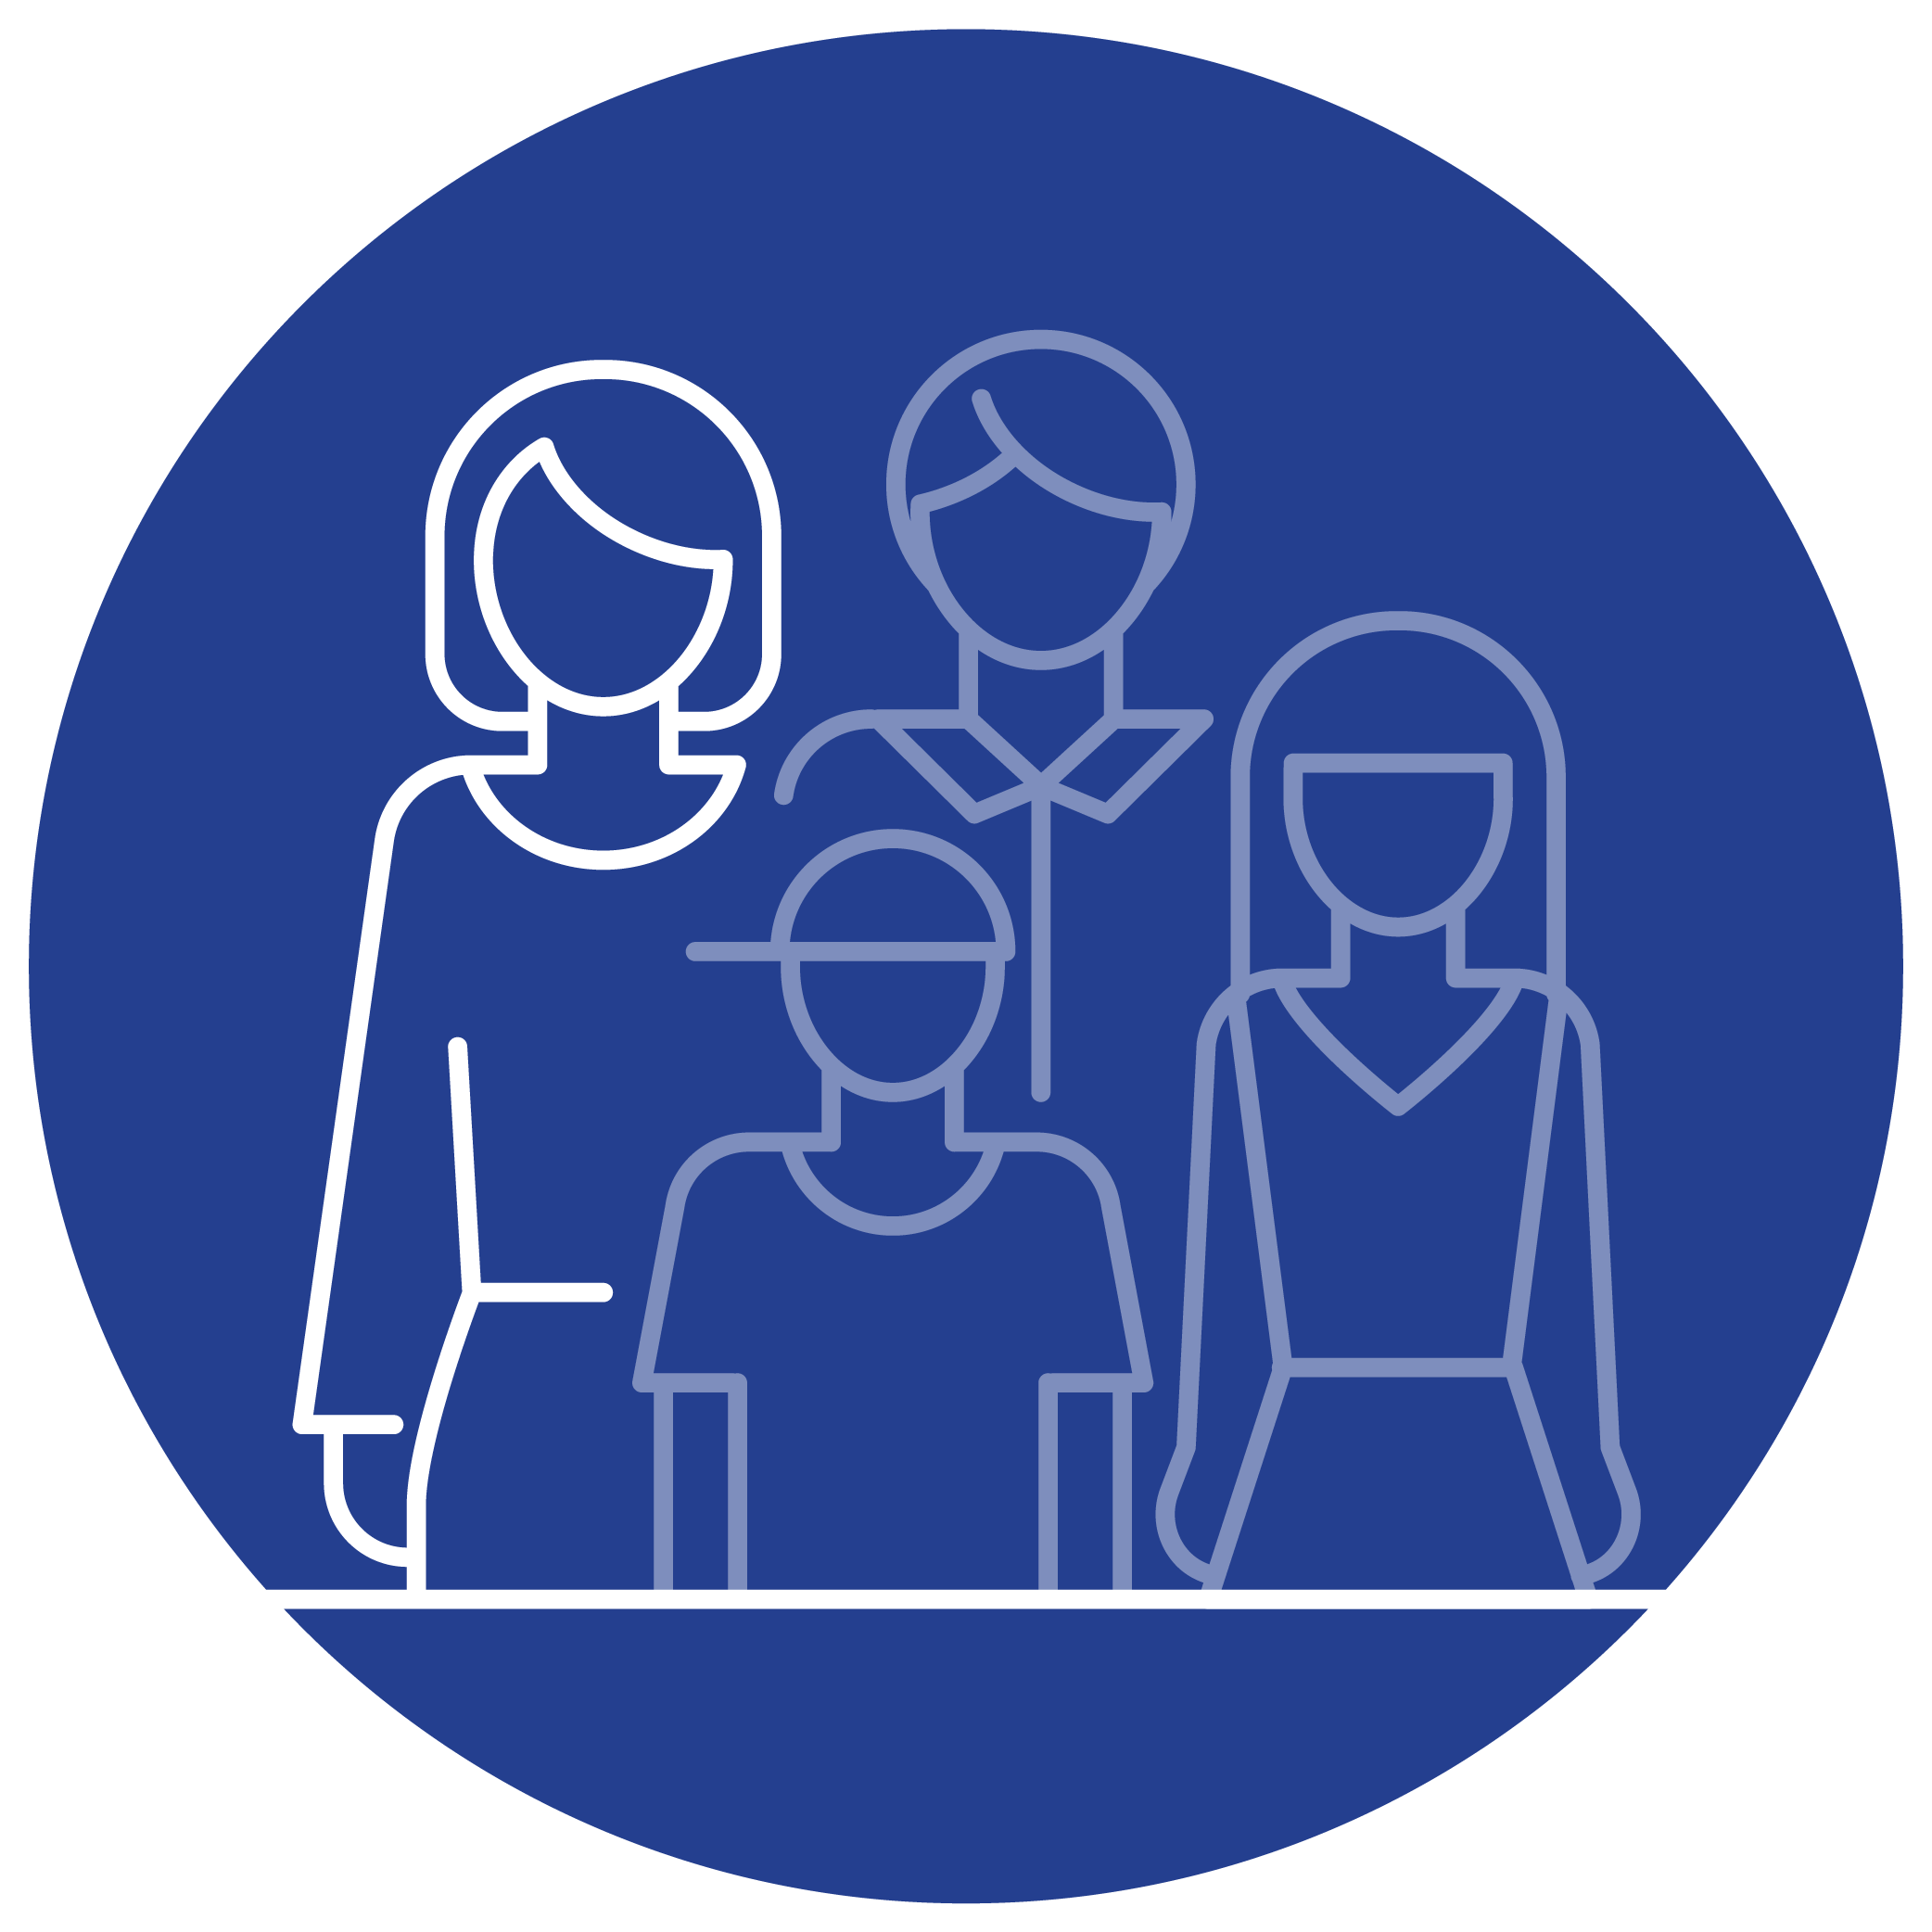 An illustrated, outlined family in a blue circle. The mother is highlighted to signify an eligible individual's parent or guardian.